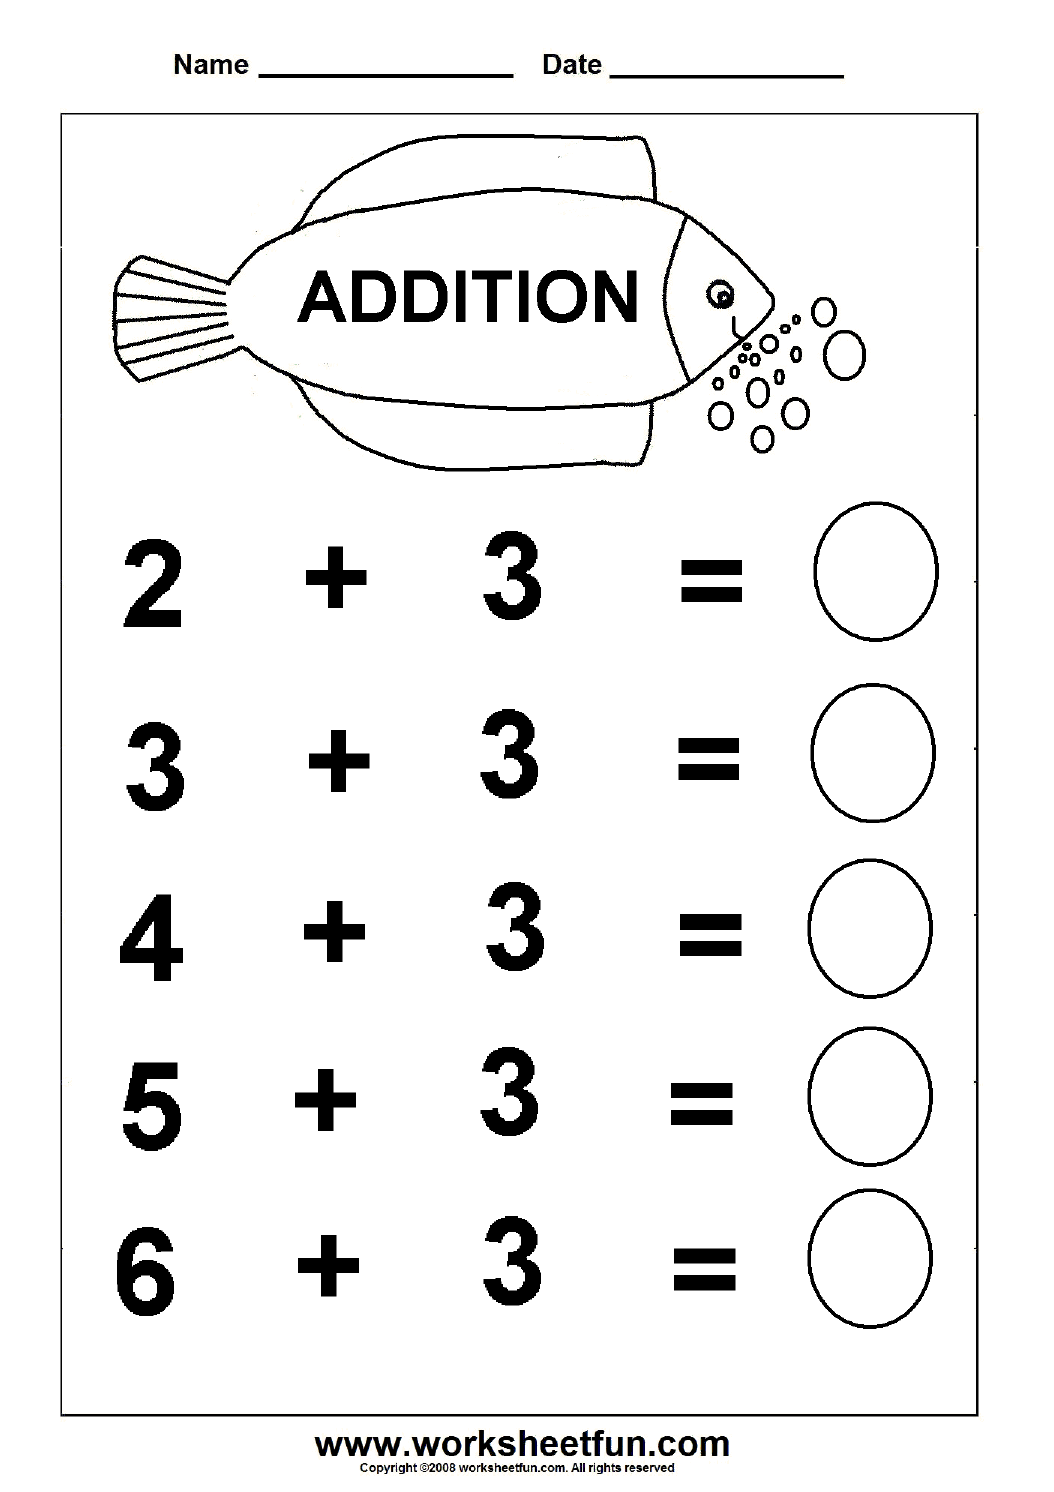 Addition Basic Addition Facts FREE Printable Worksheets – Speed Addition Worksheet